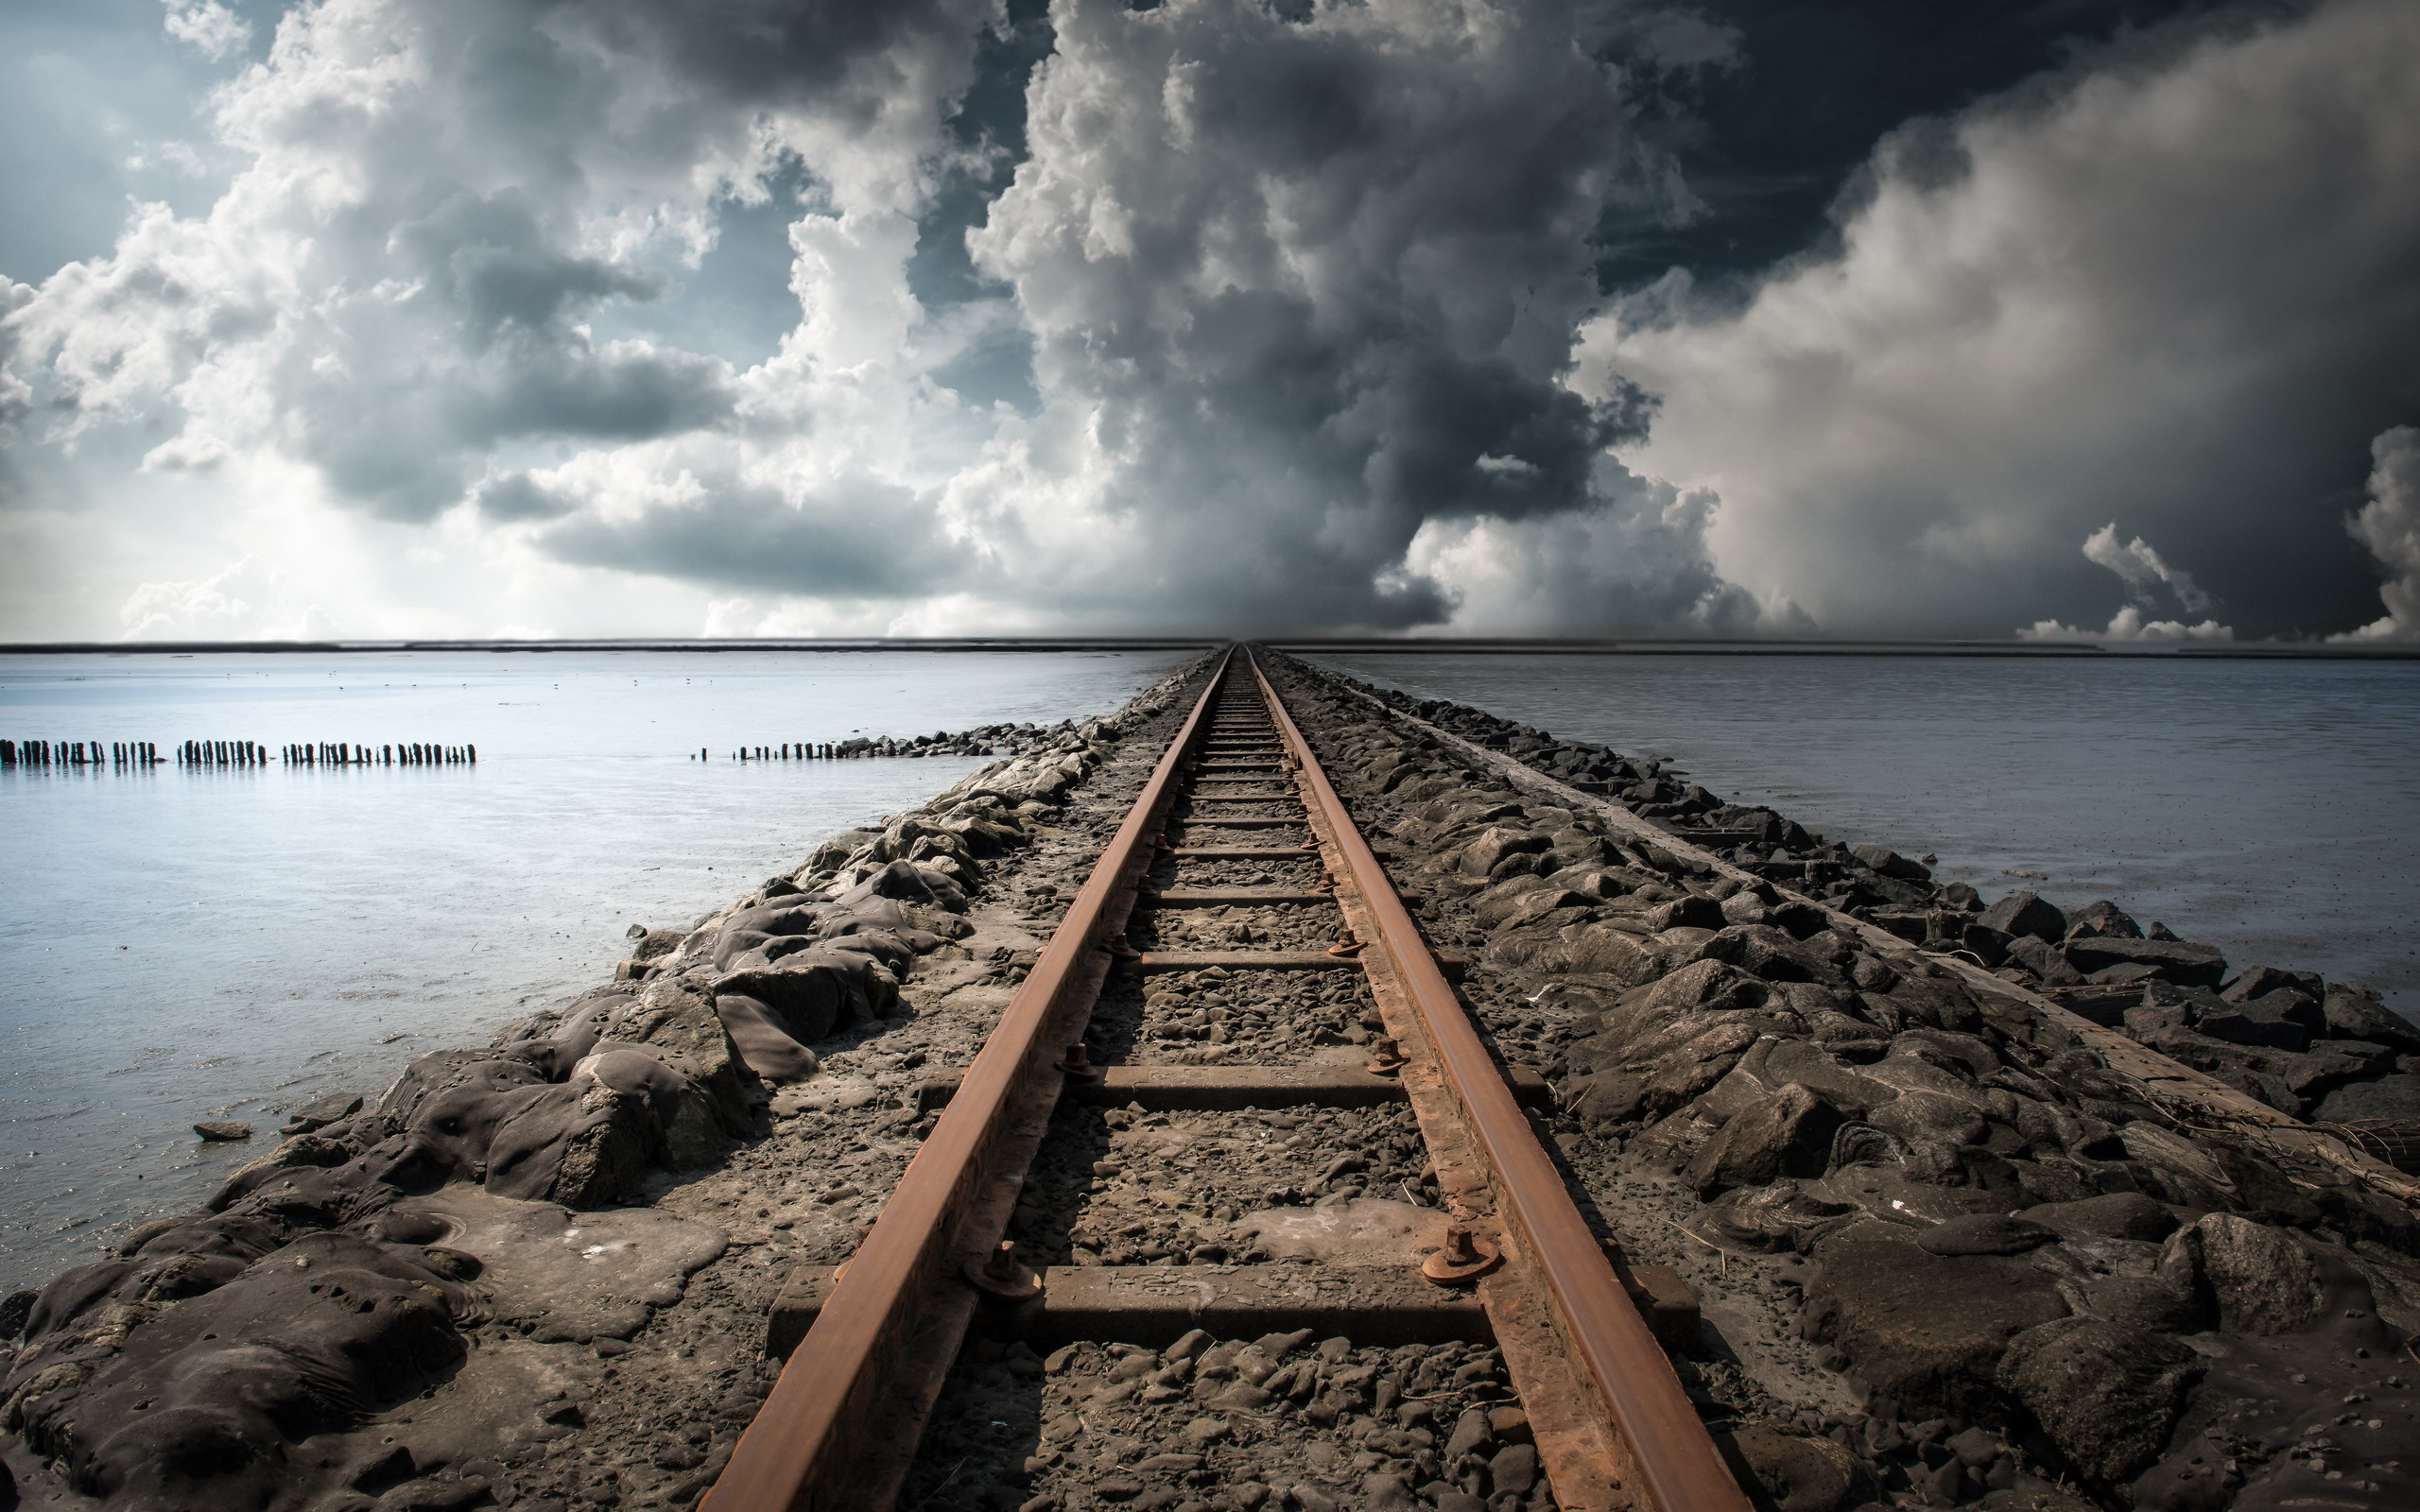 Hd wallpaper editing - 300 Railroad Hd Wallpapers Backgrounds Wallpaper Abyss